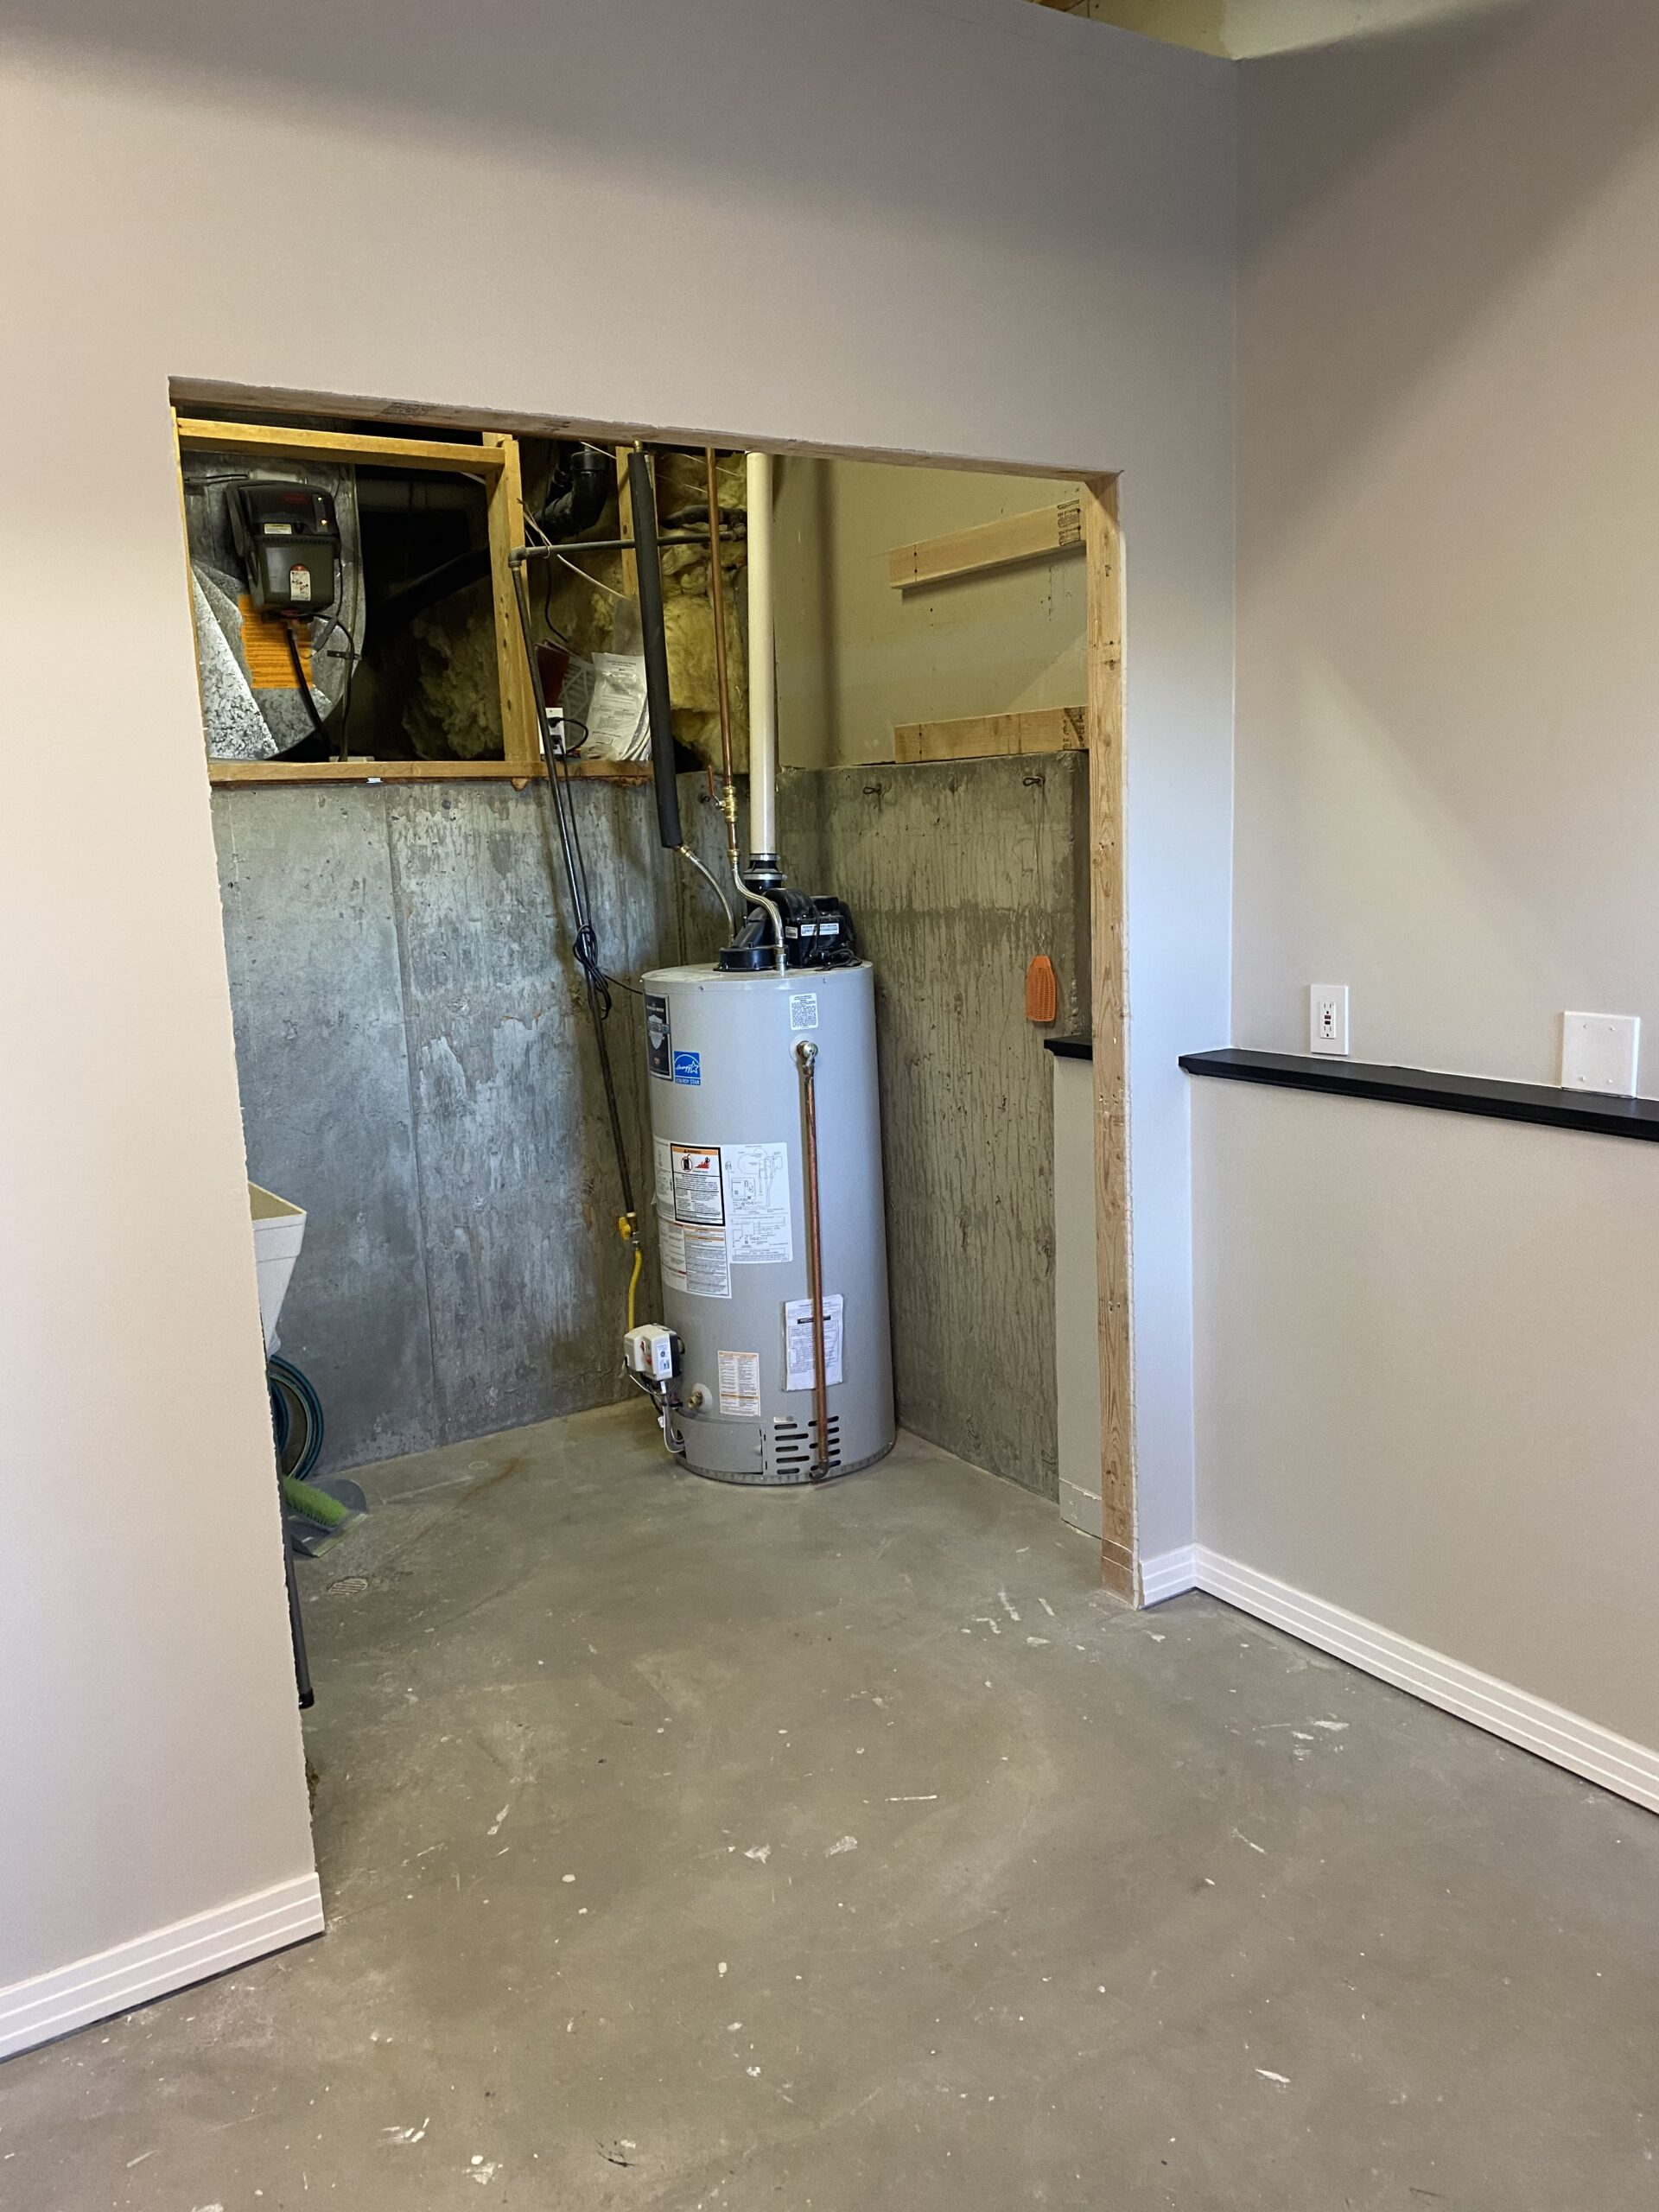 Water heater in unfinished utility closet with cement floors and framed doorway without doors